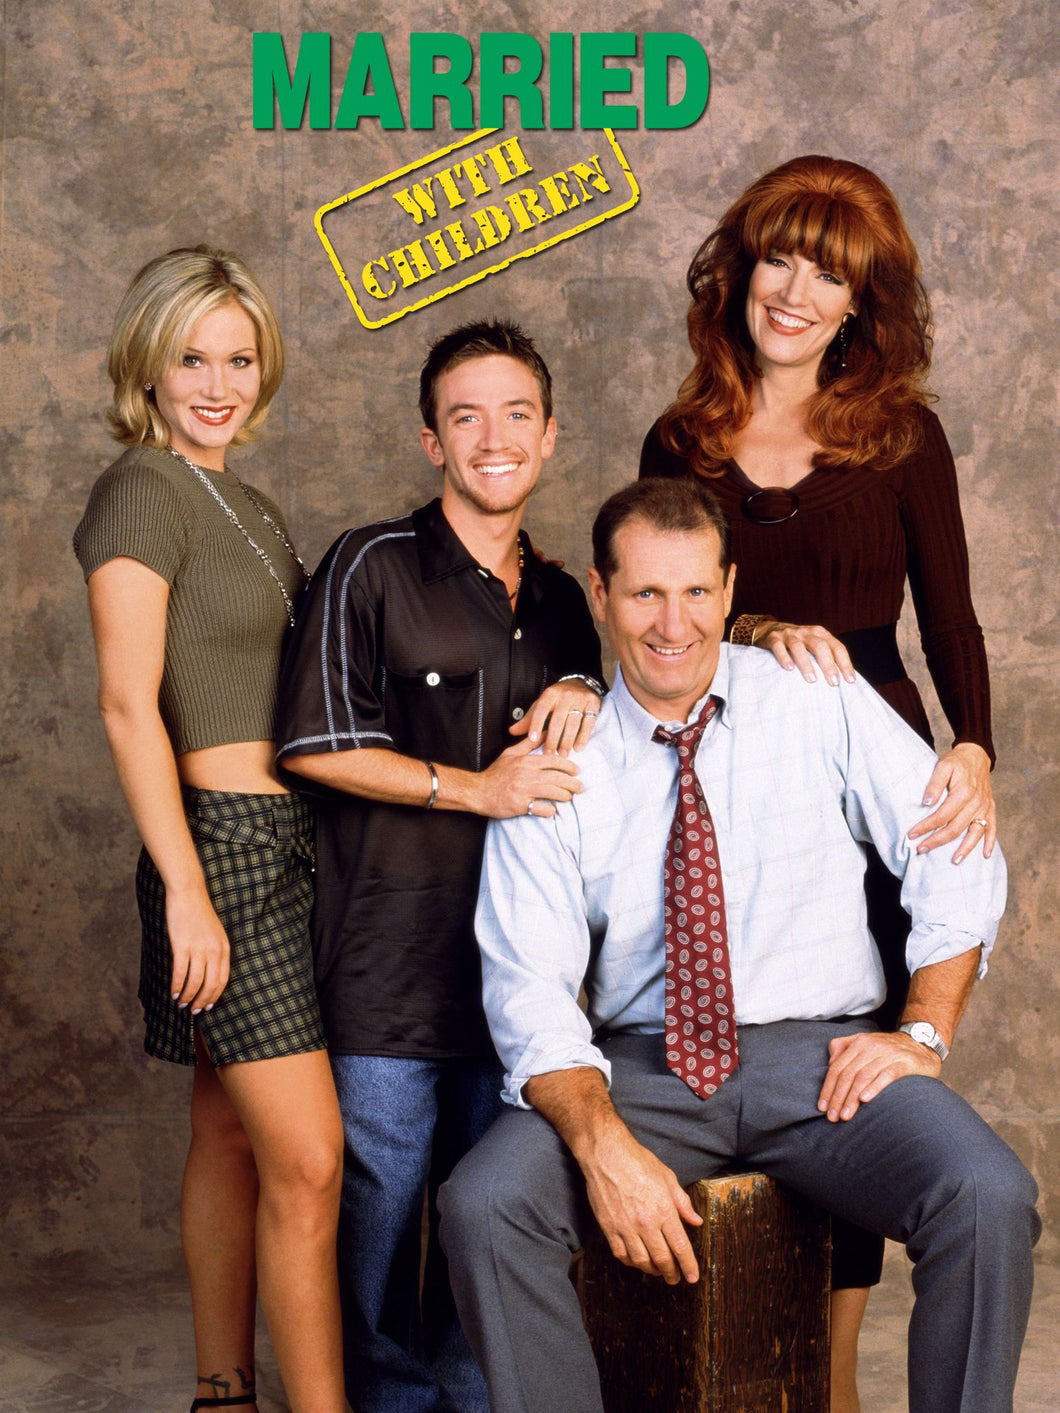 Ed O'Neill, Katey Sagal, David Faustino and Christina Applegate - Quad Signed Married...with Children Image #5 (8x10, 11x14, 16x20)